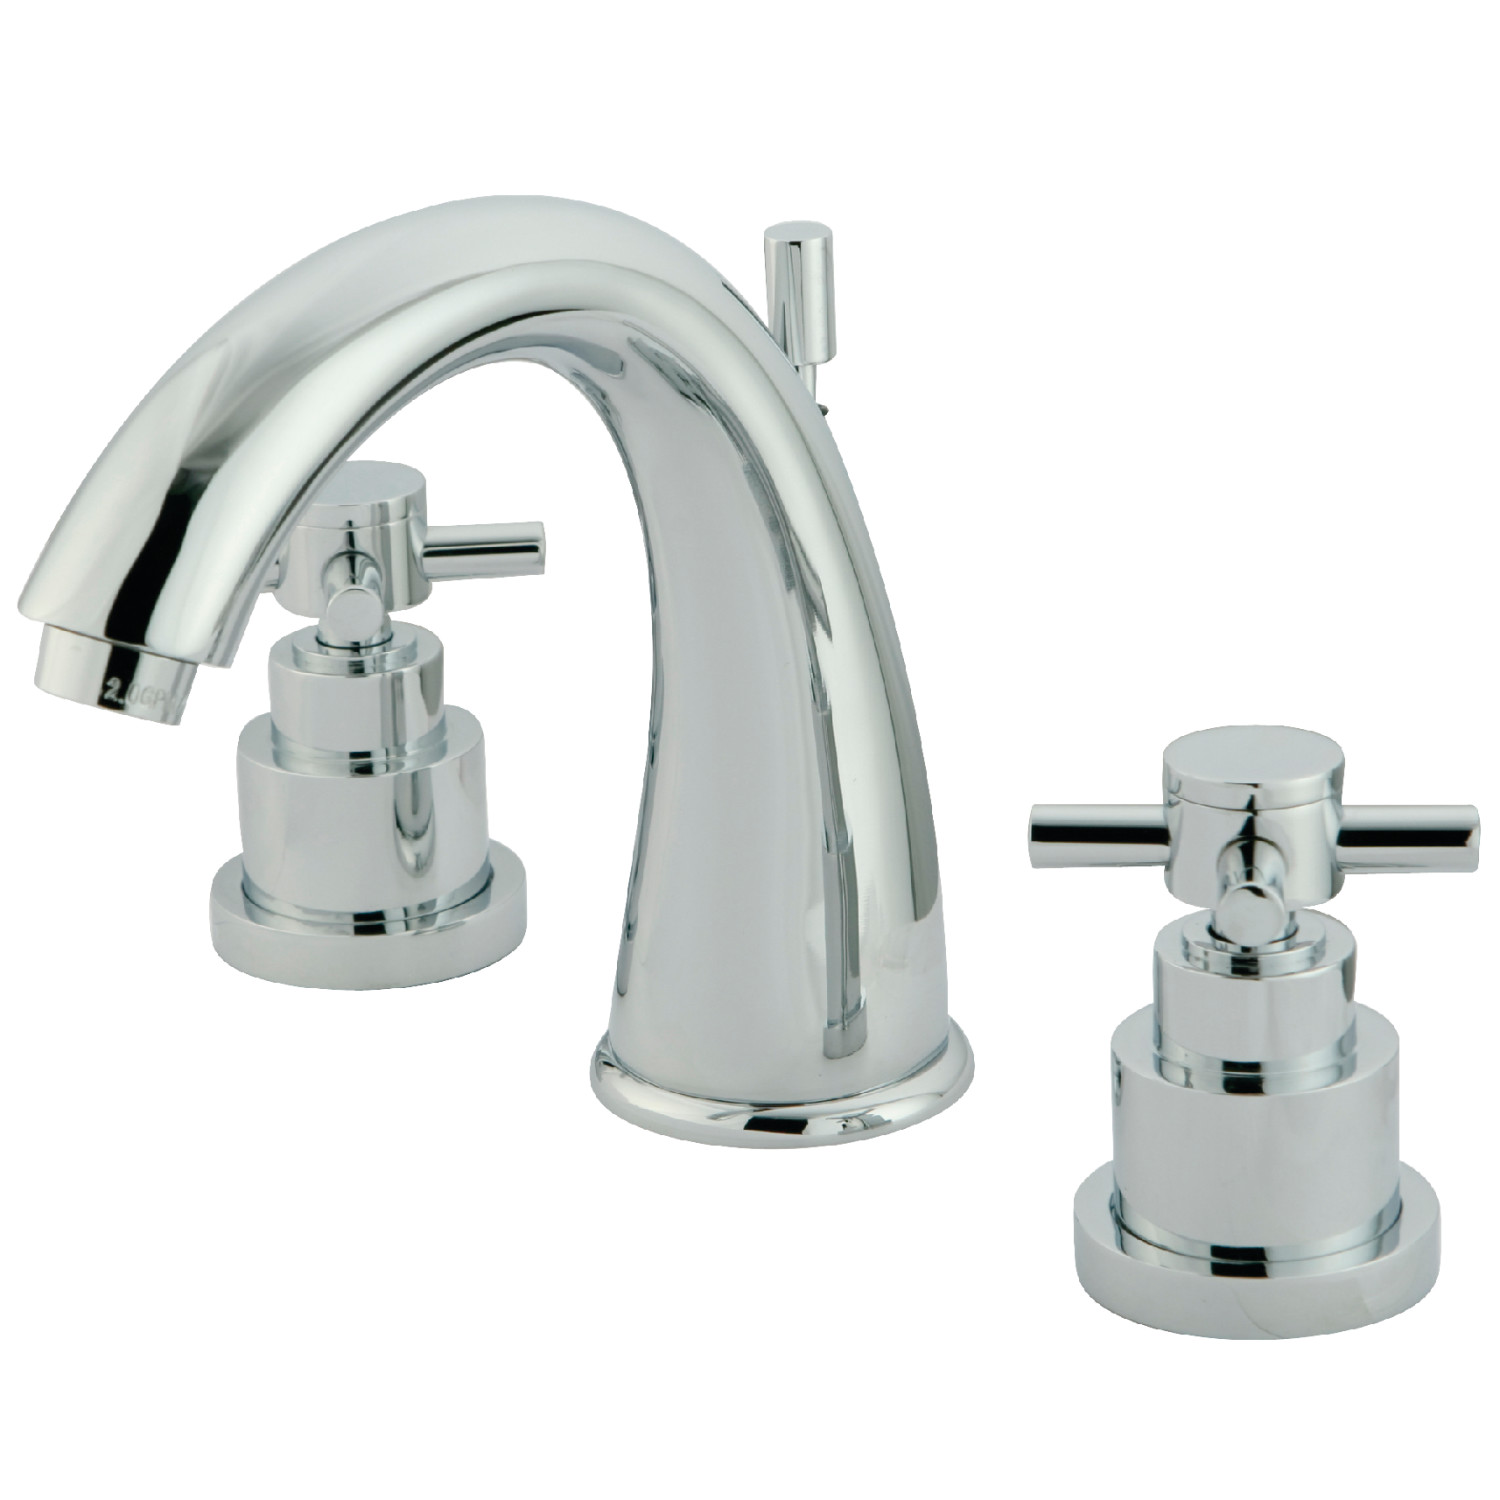 Modern Two-Handle 3-Hole Deck Mounted Widespread Bathroom Faucet with Brass Pop-Up in Polished Chrome with 4 Color Option